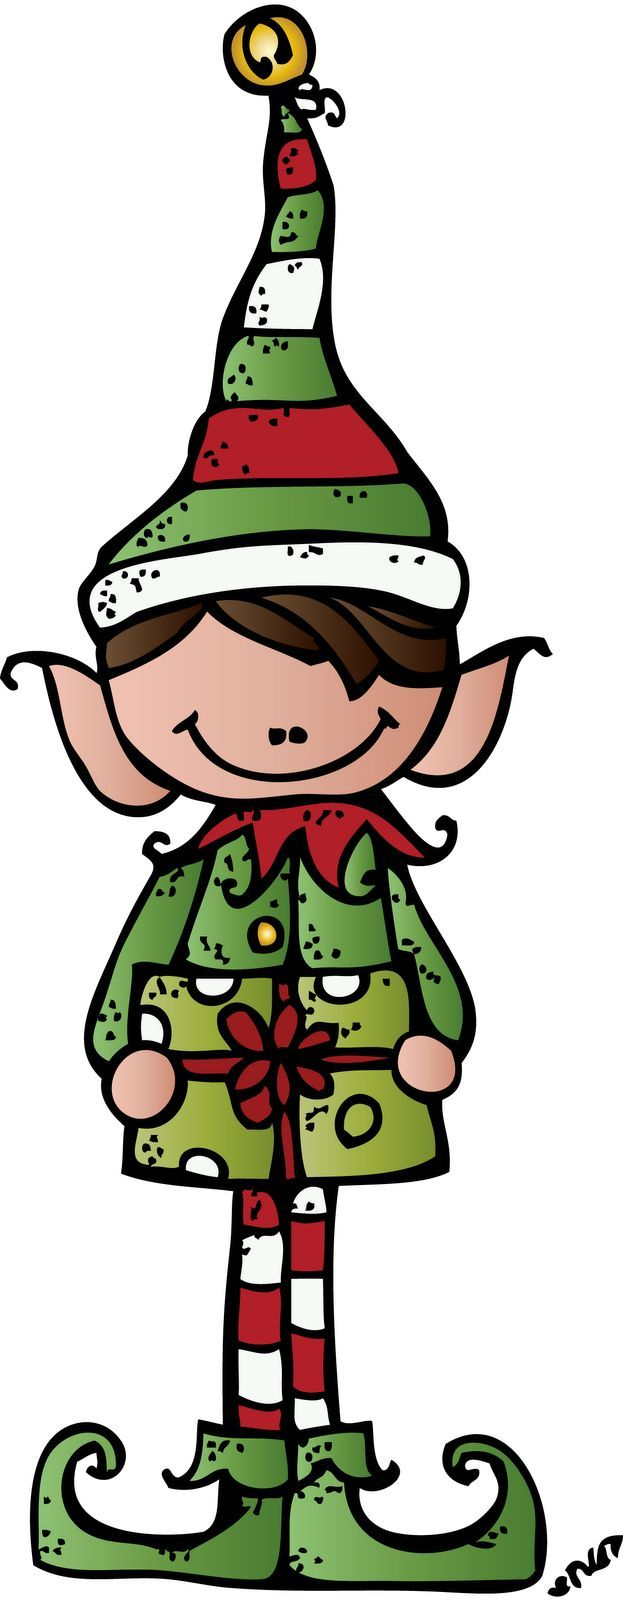 623x1600 Elf On The Shelf Clipart Amp Look At Elf On The Shelf Clip Art